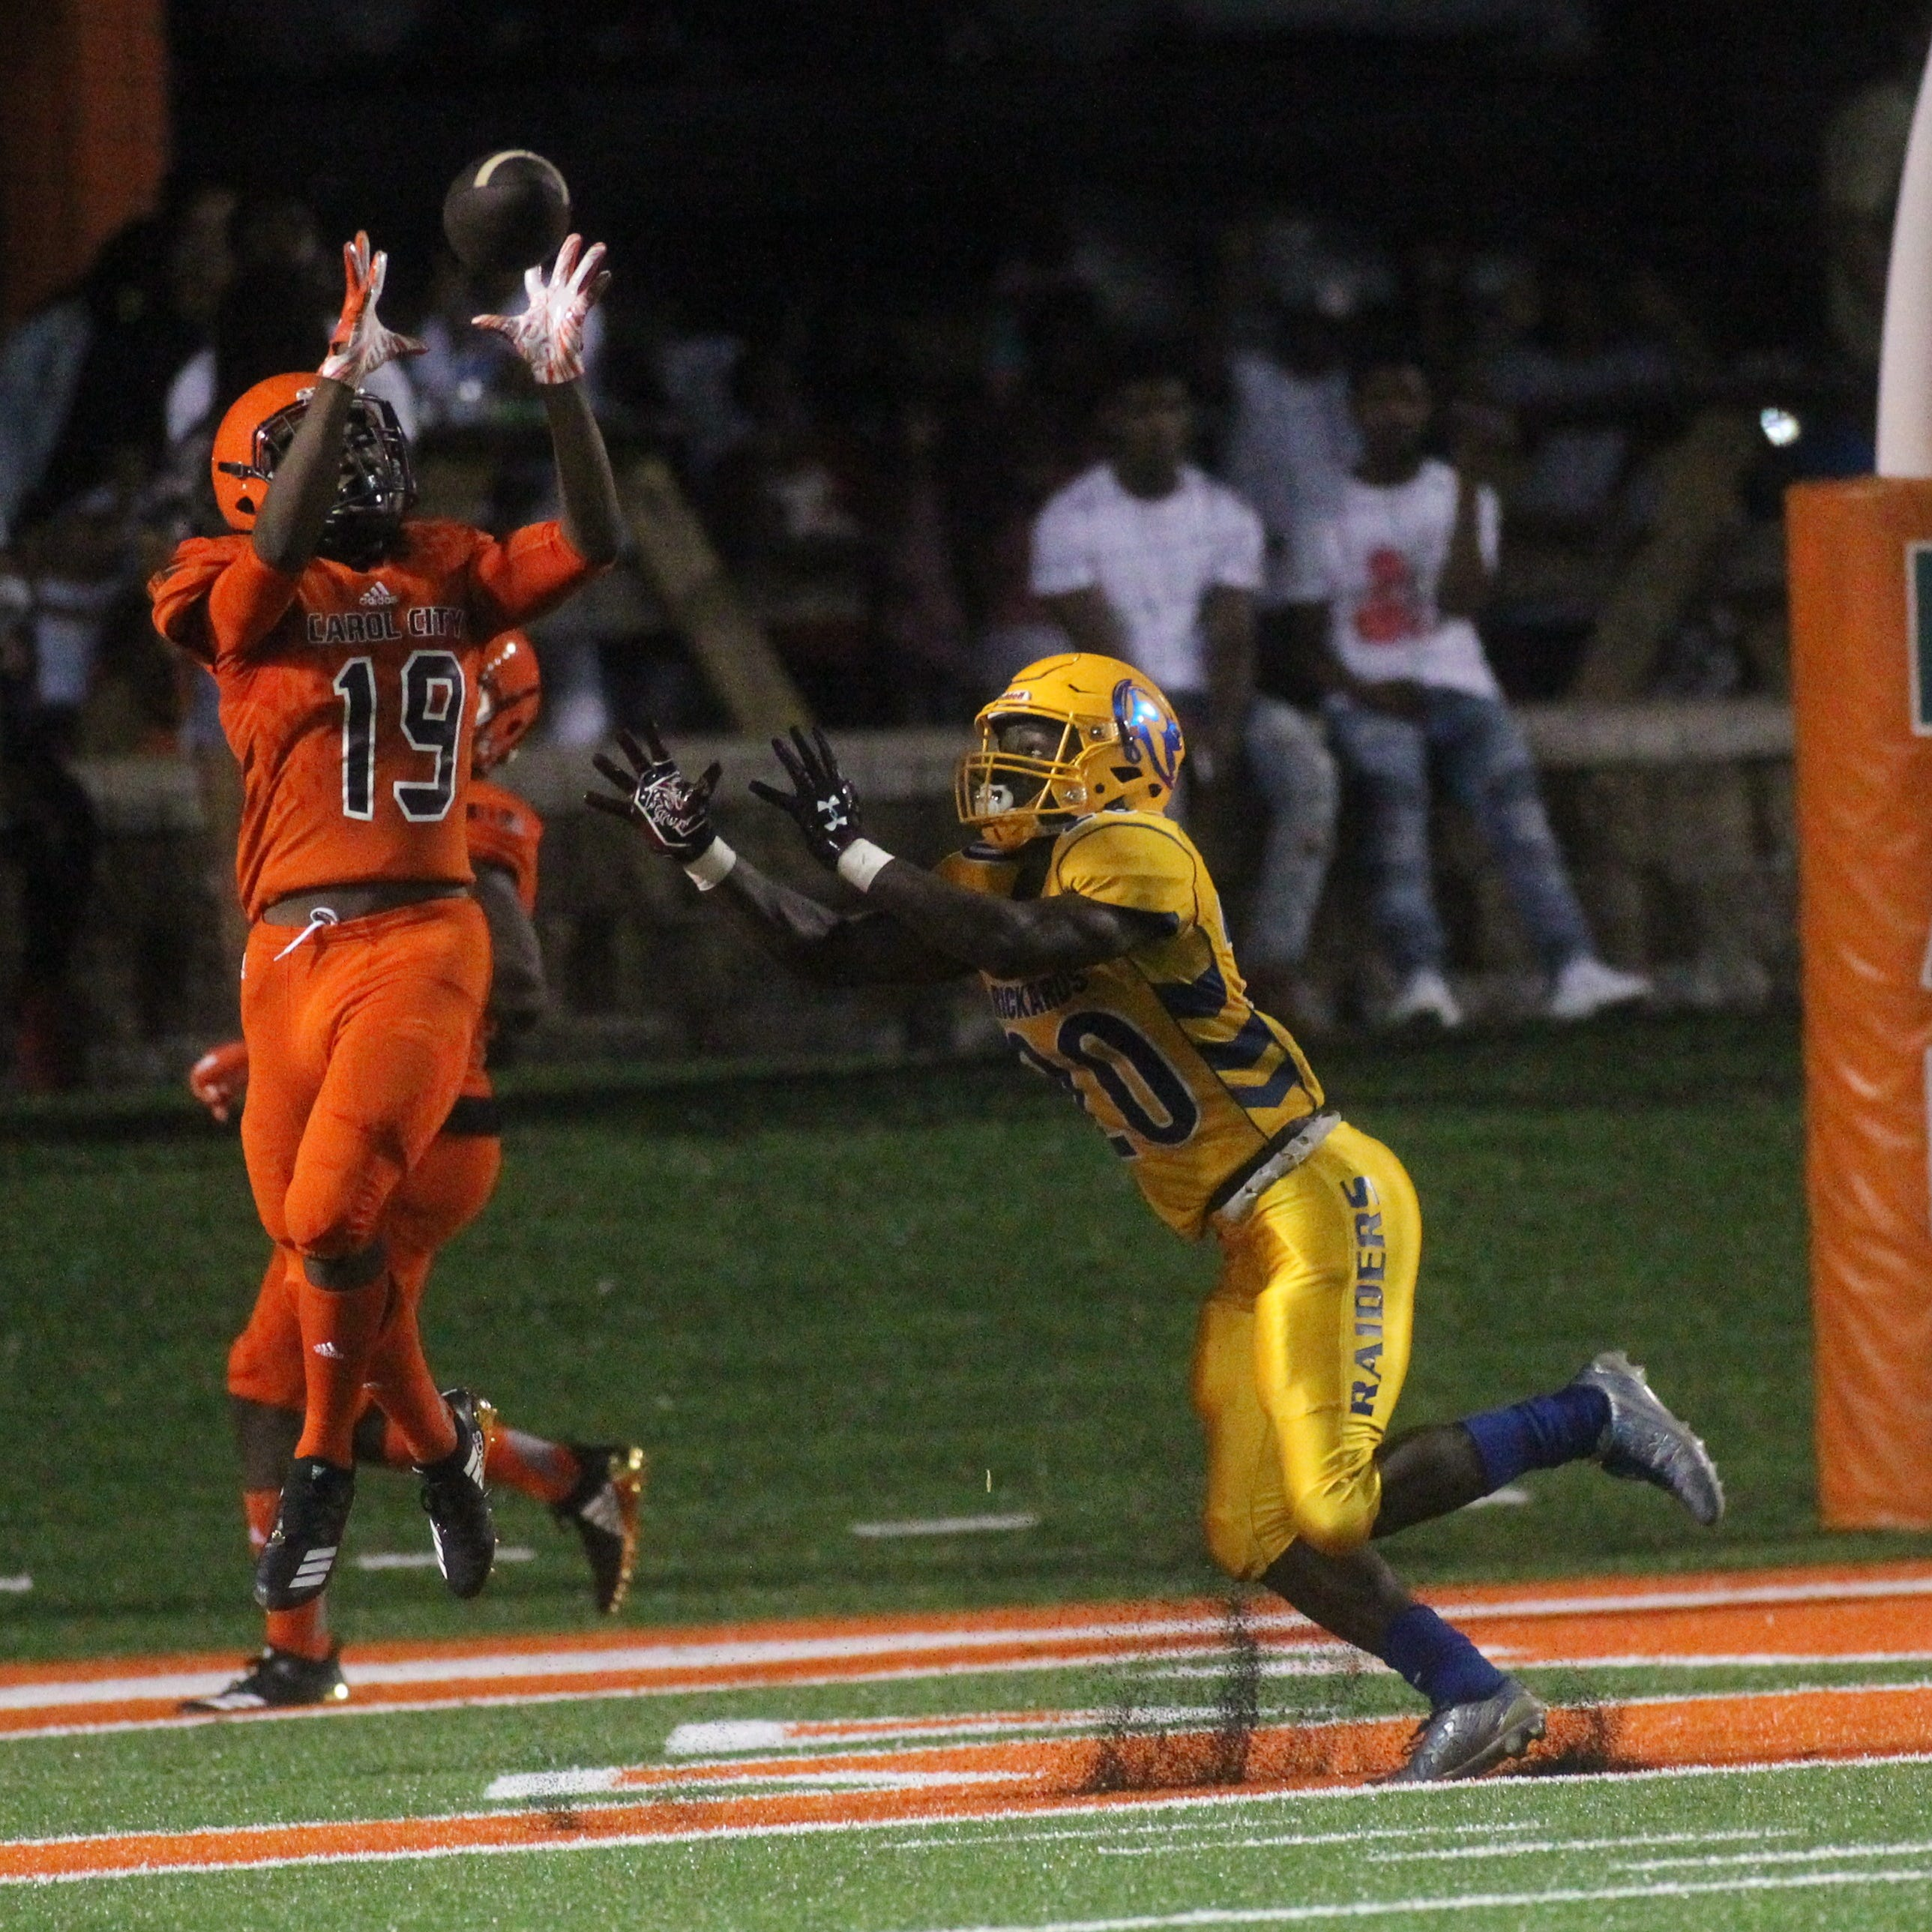 Rickards coach Quintin Lewis upbeat after humbling Carol City shutout | Miller